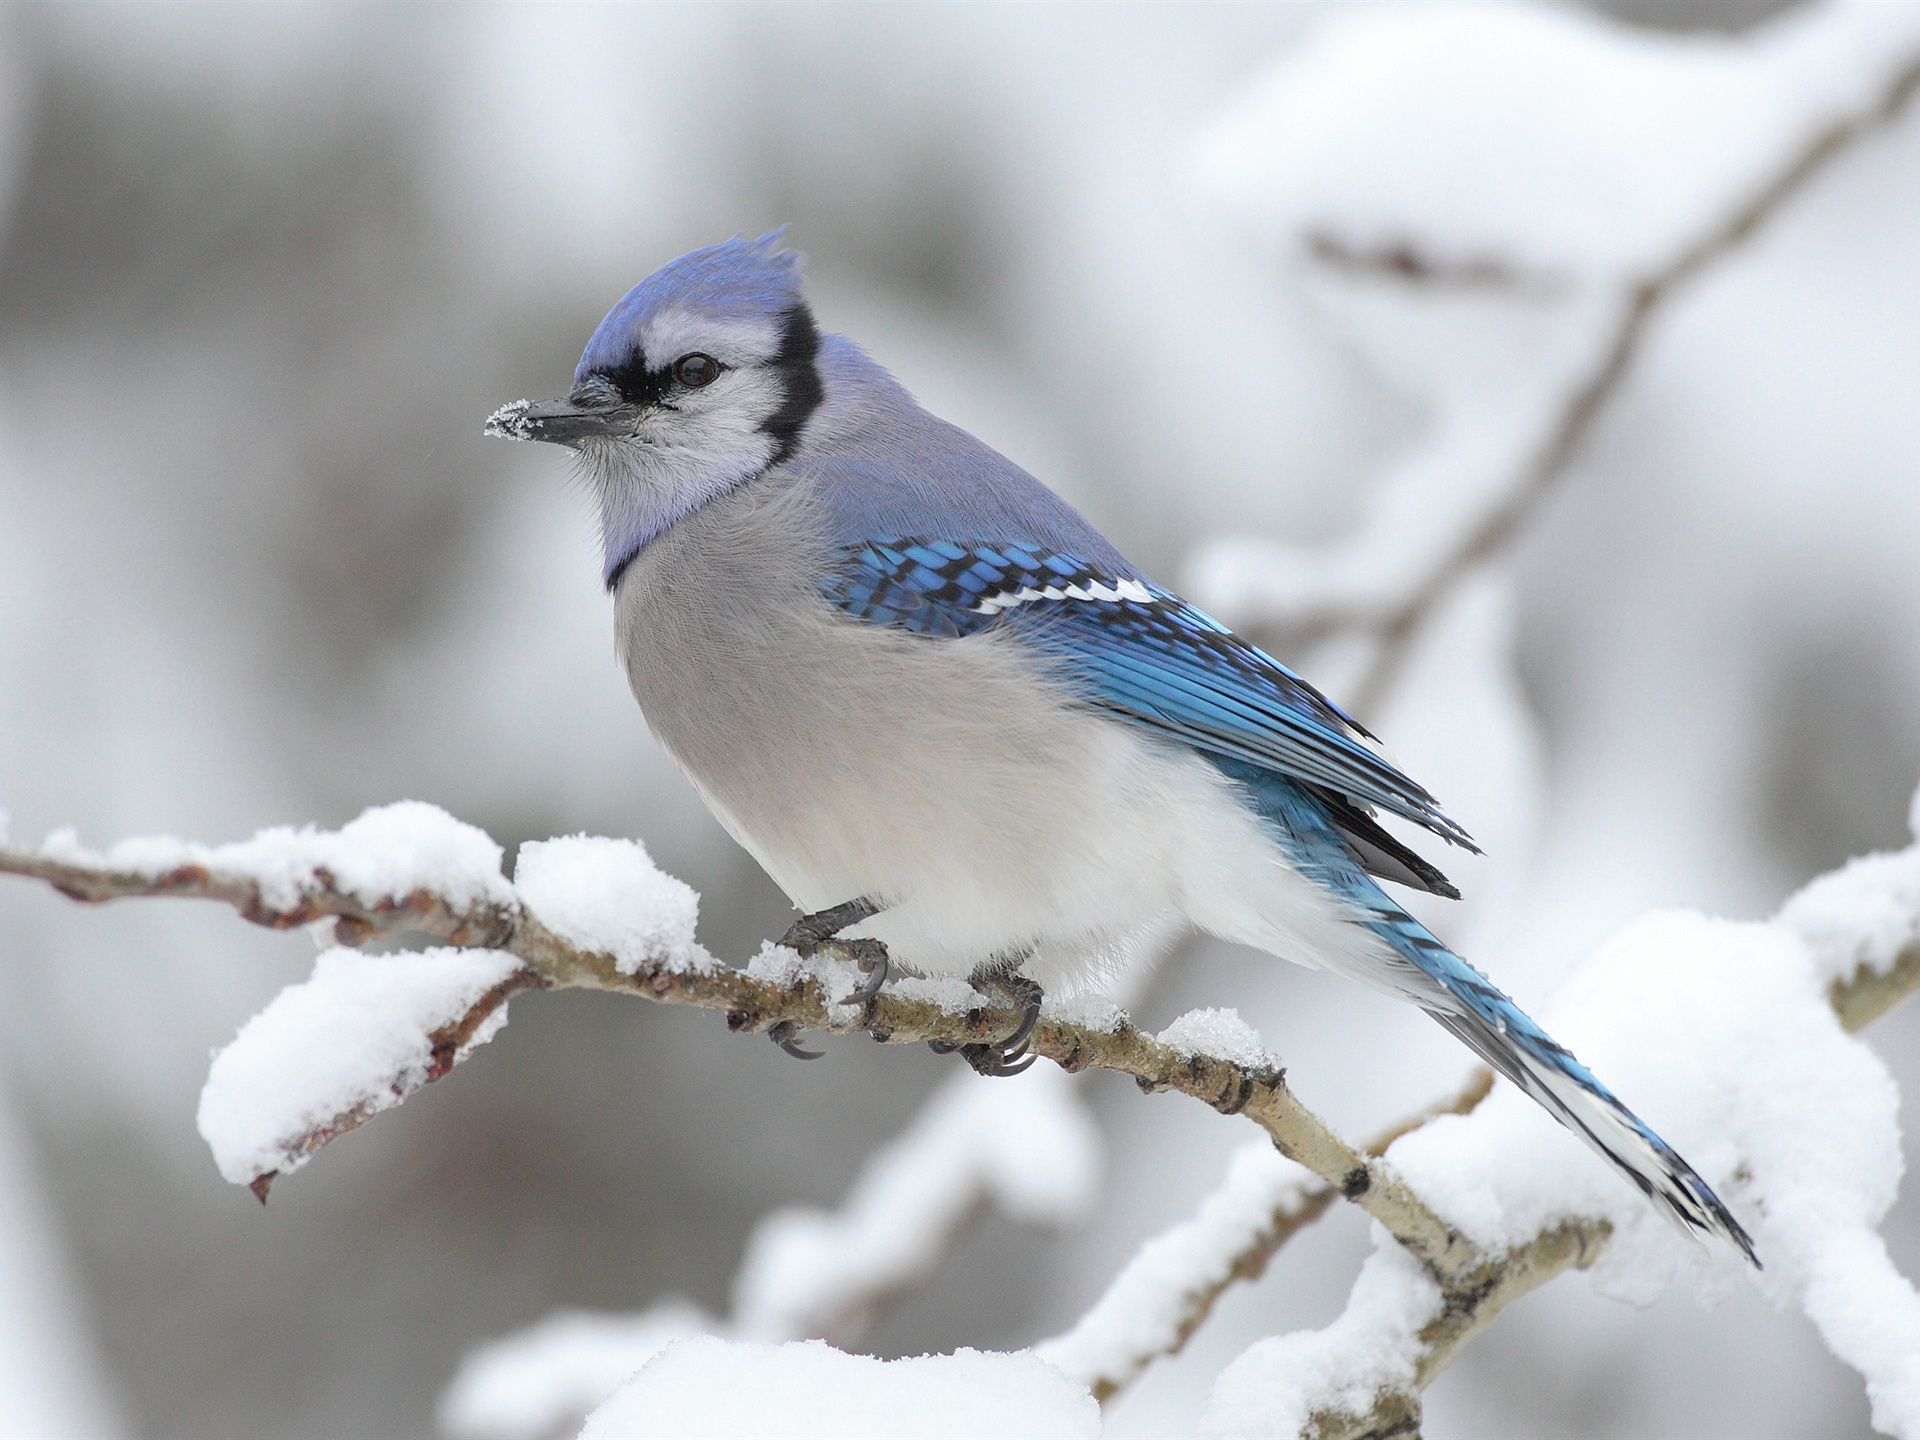 Bird on the tree winter snows wallpaper - 1920x1440